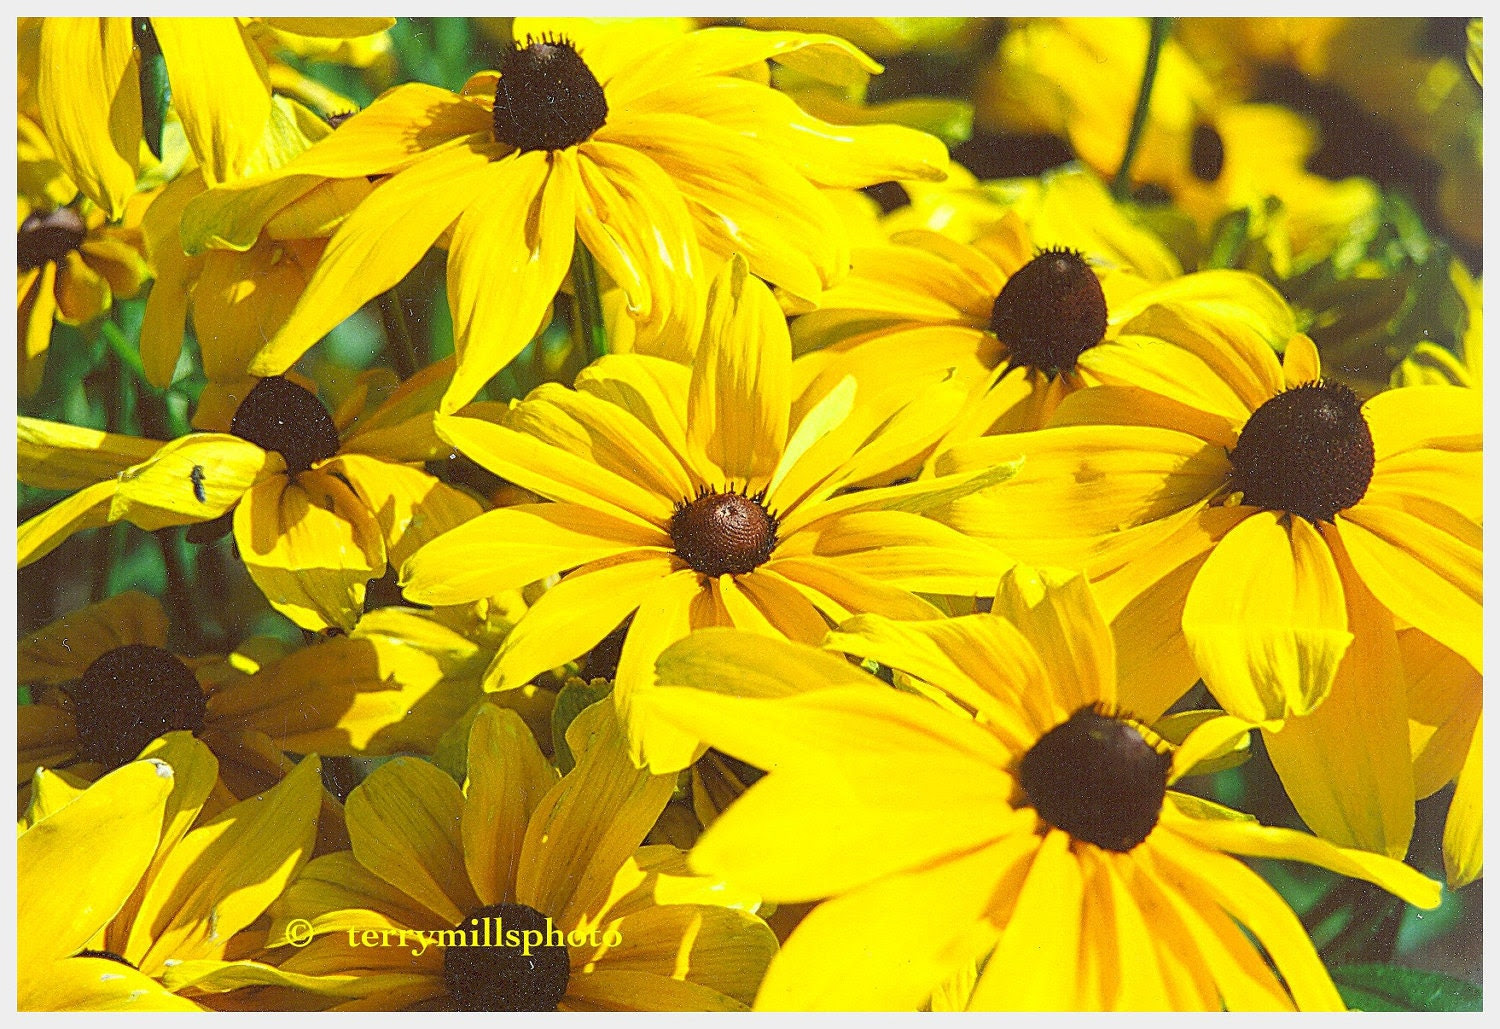 Sunny Sun Flowers In Bright Lemon Yellow With Brown Centers 5x7 - terrymillsphoto